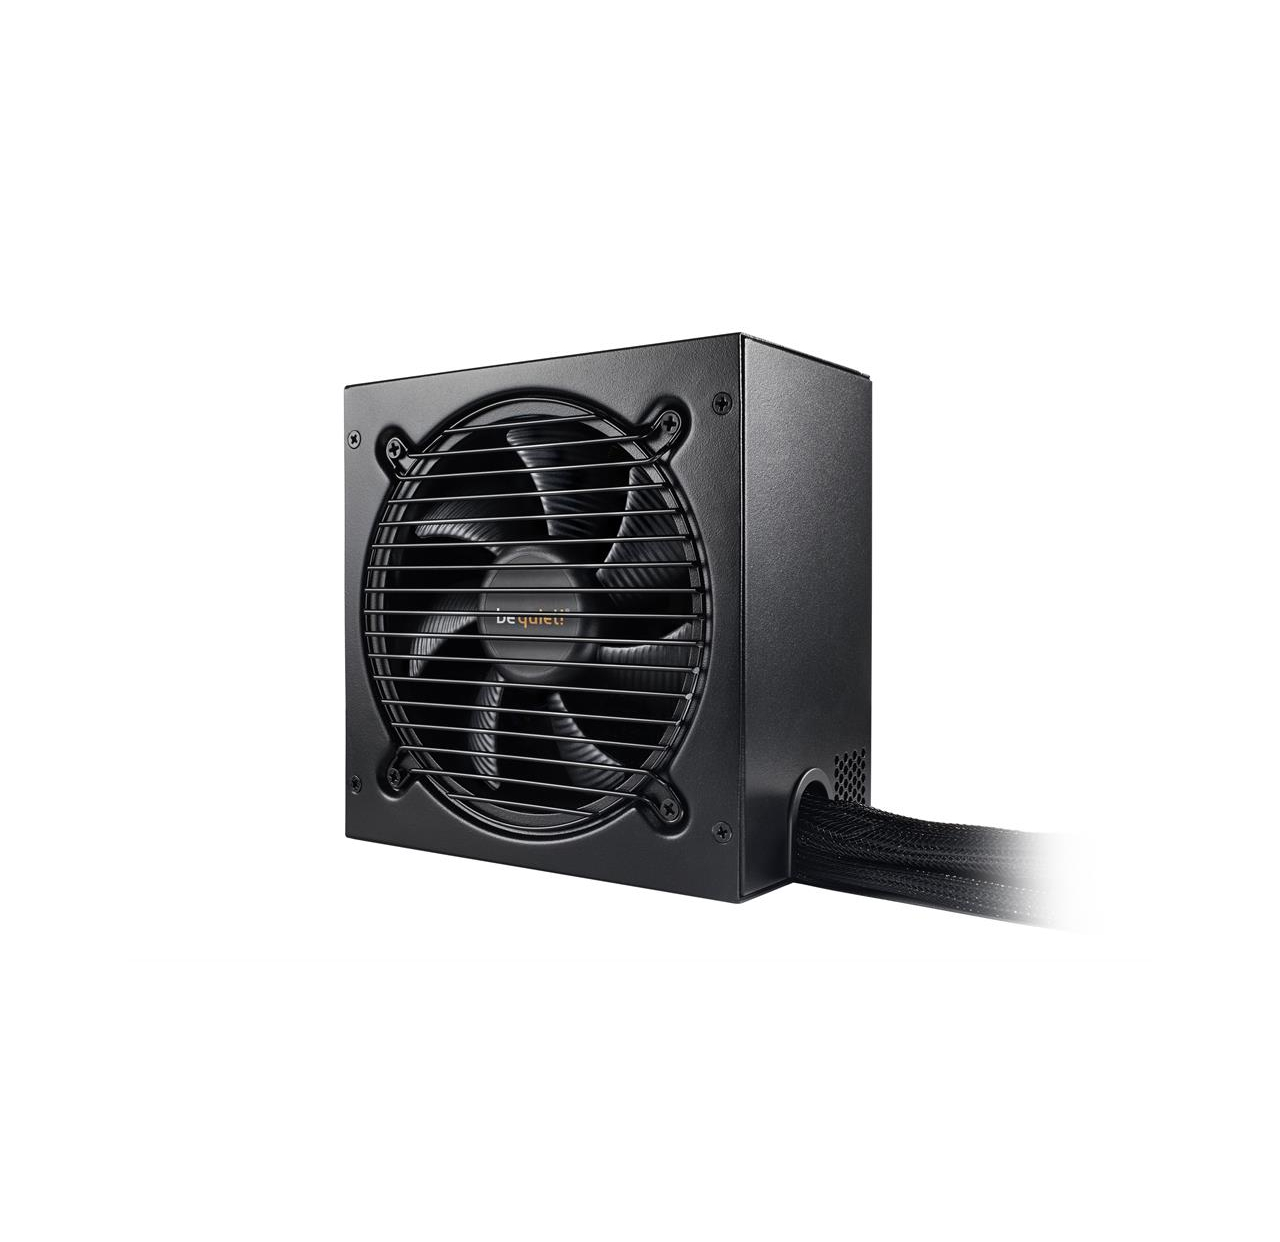 Zasilacz PC be quiet! Pure Power 11 700W, 80PLUS Bronze, activePFC